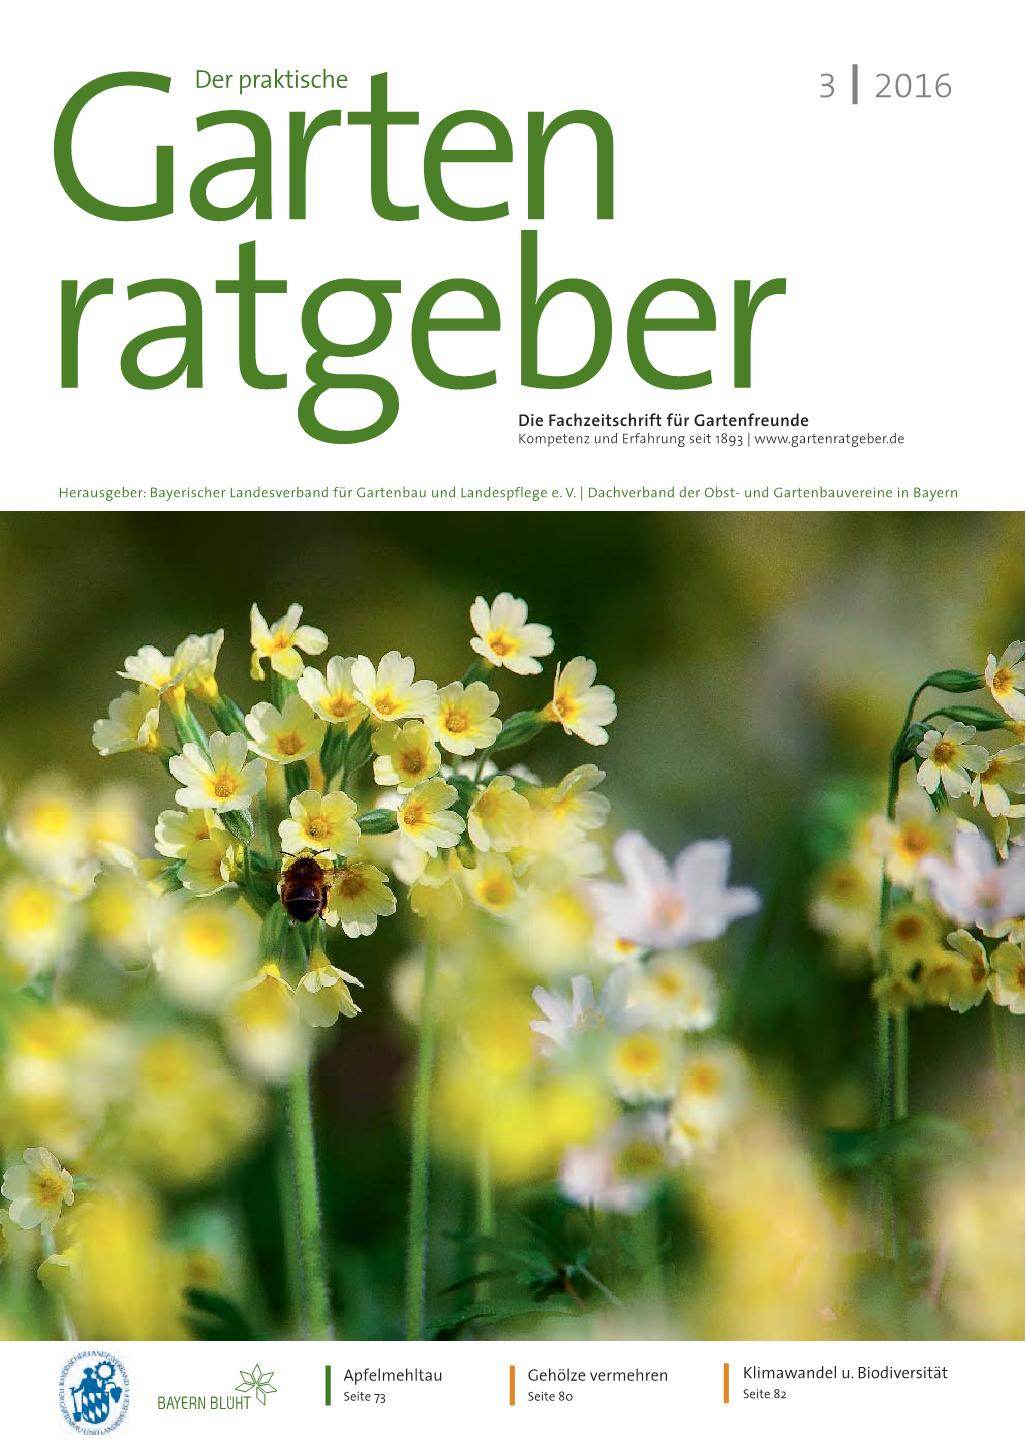 Rote Küchenzwiebel Gartenratgeber 03 2016 Pages 1 14 Text Version Fliphtml5